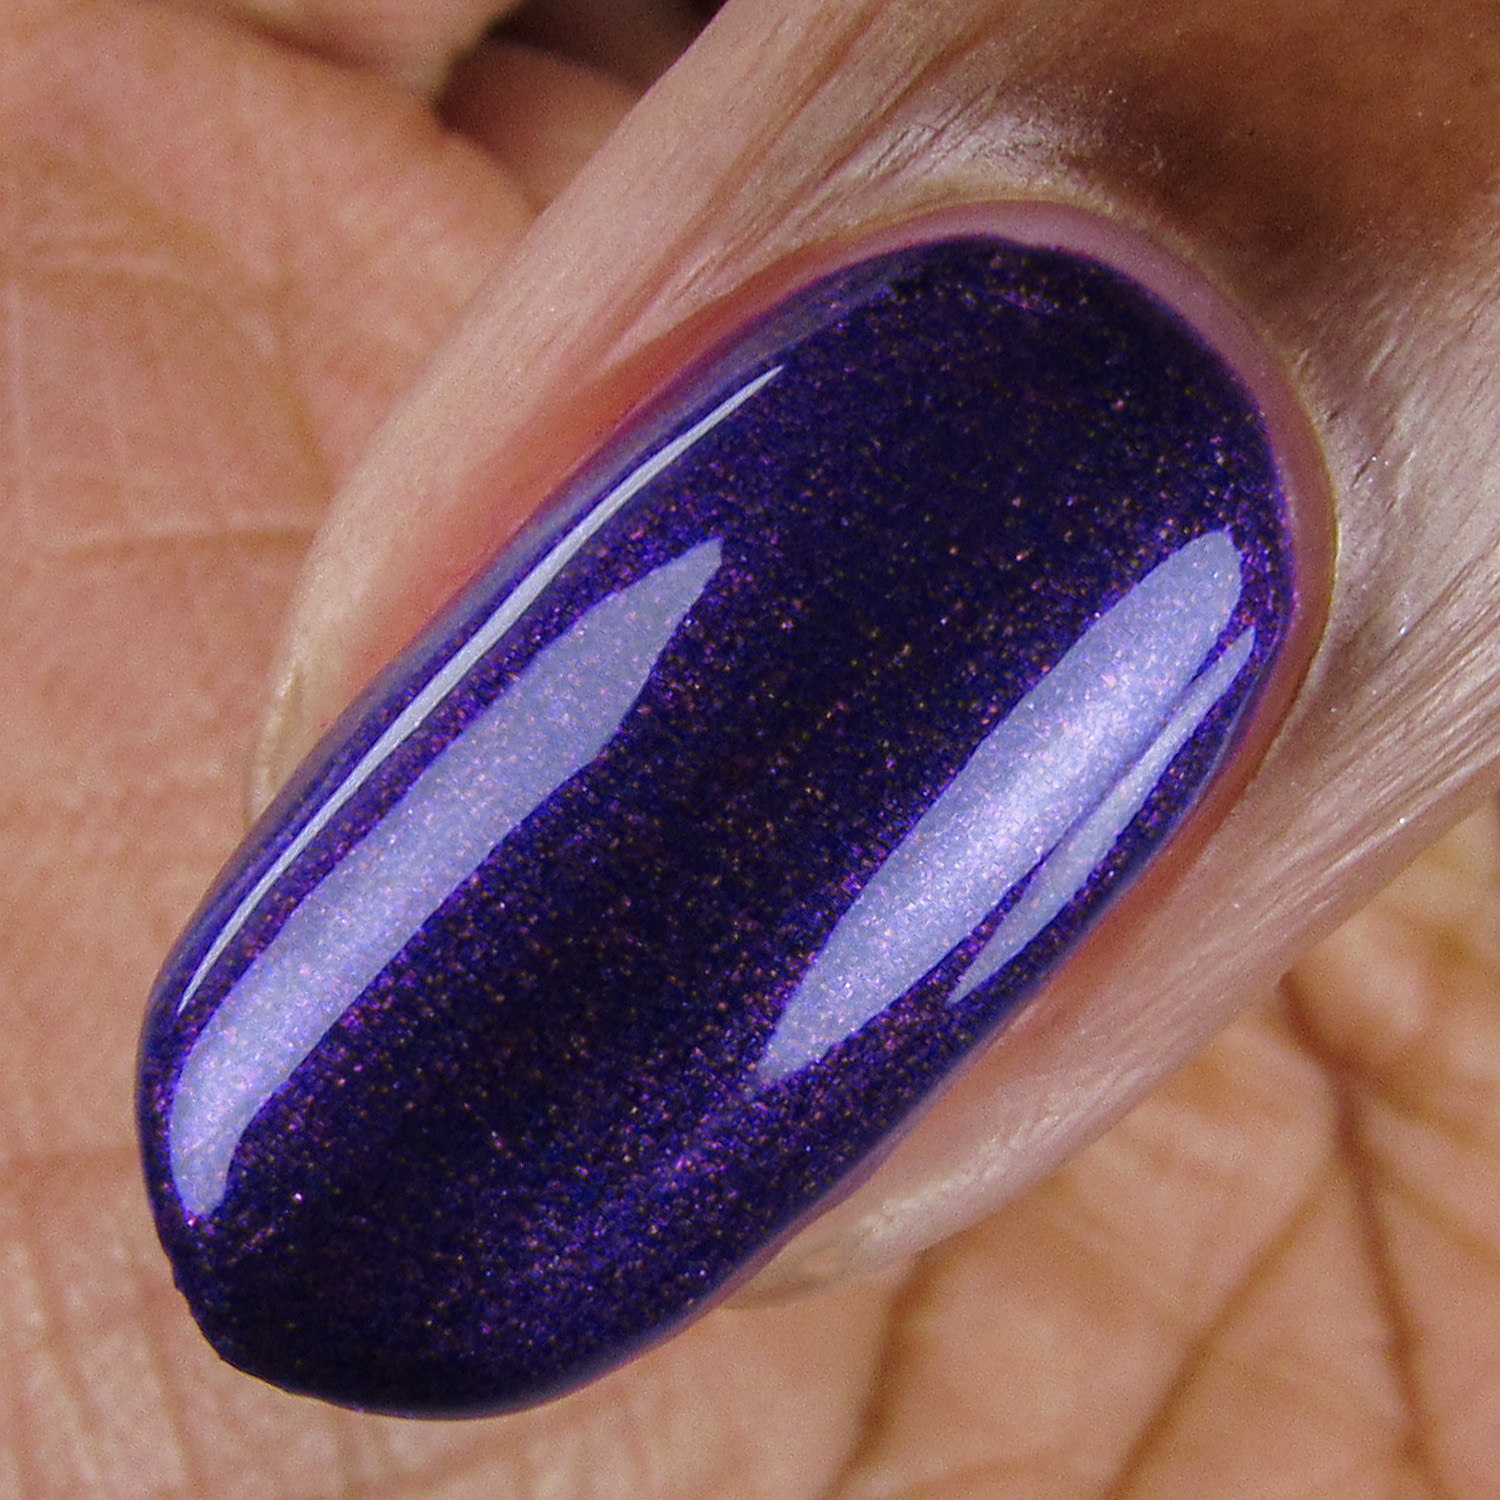 Concord - macro - Vapid Lacquer - April 2018 - Spring release - purple - pink shimmer